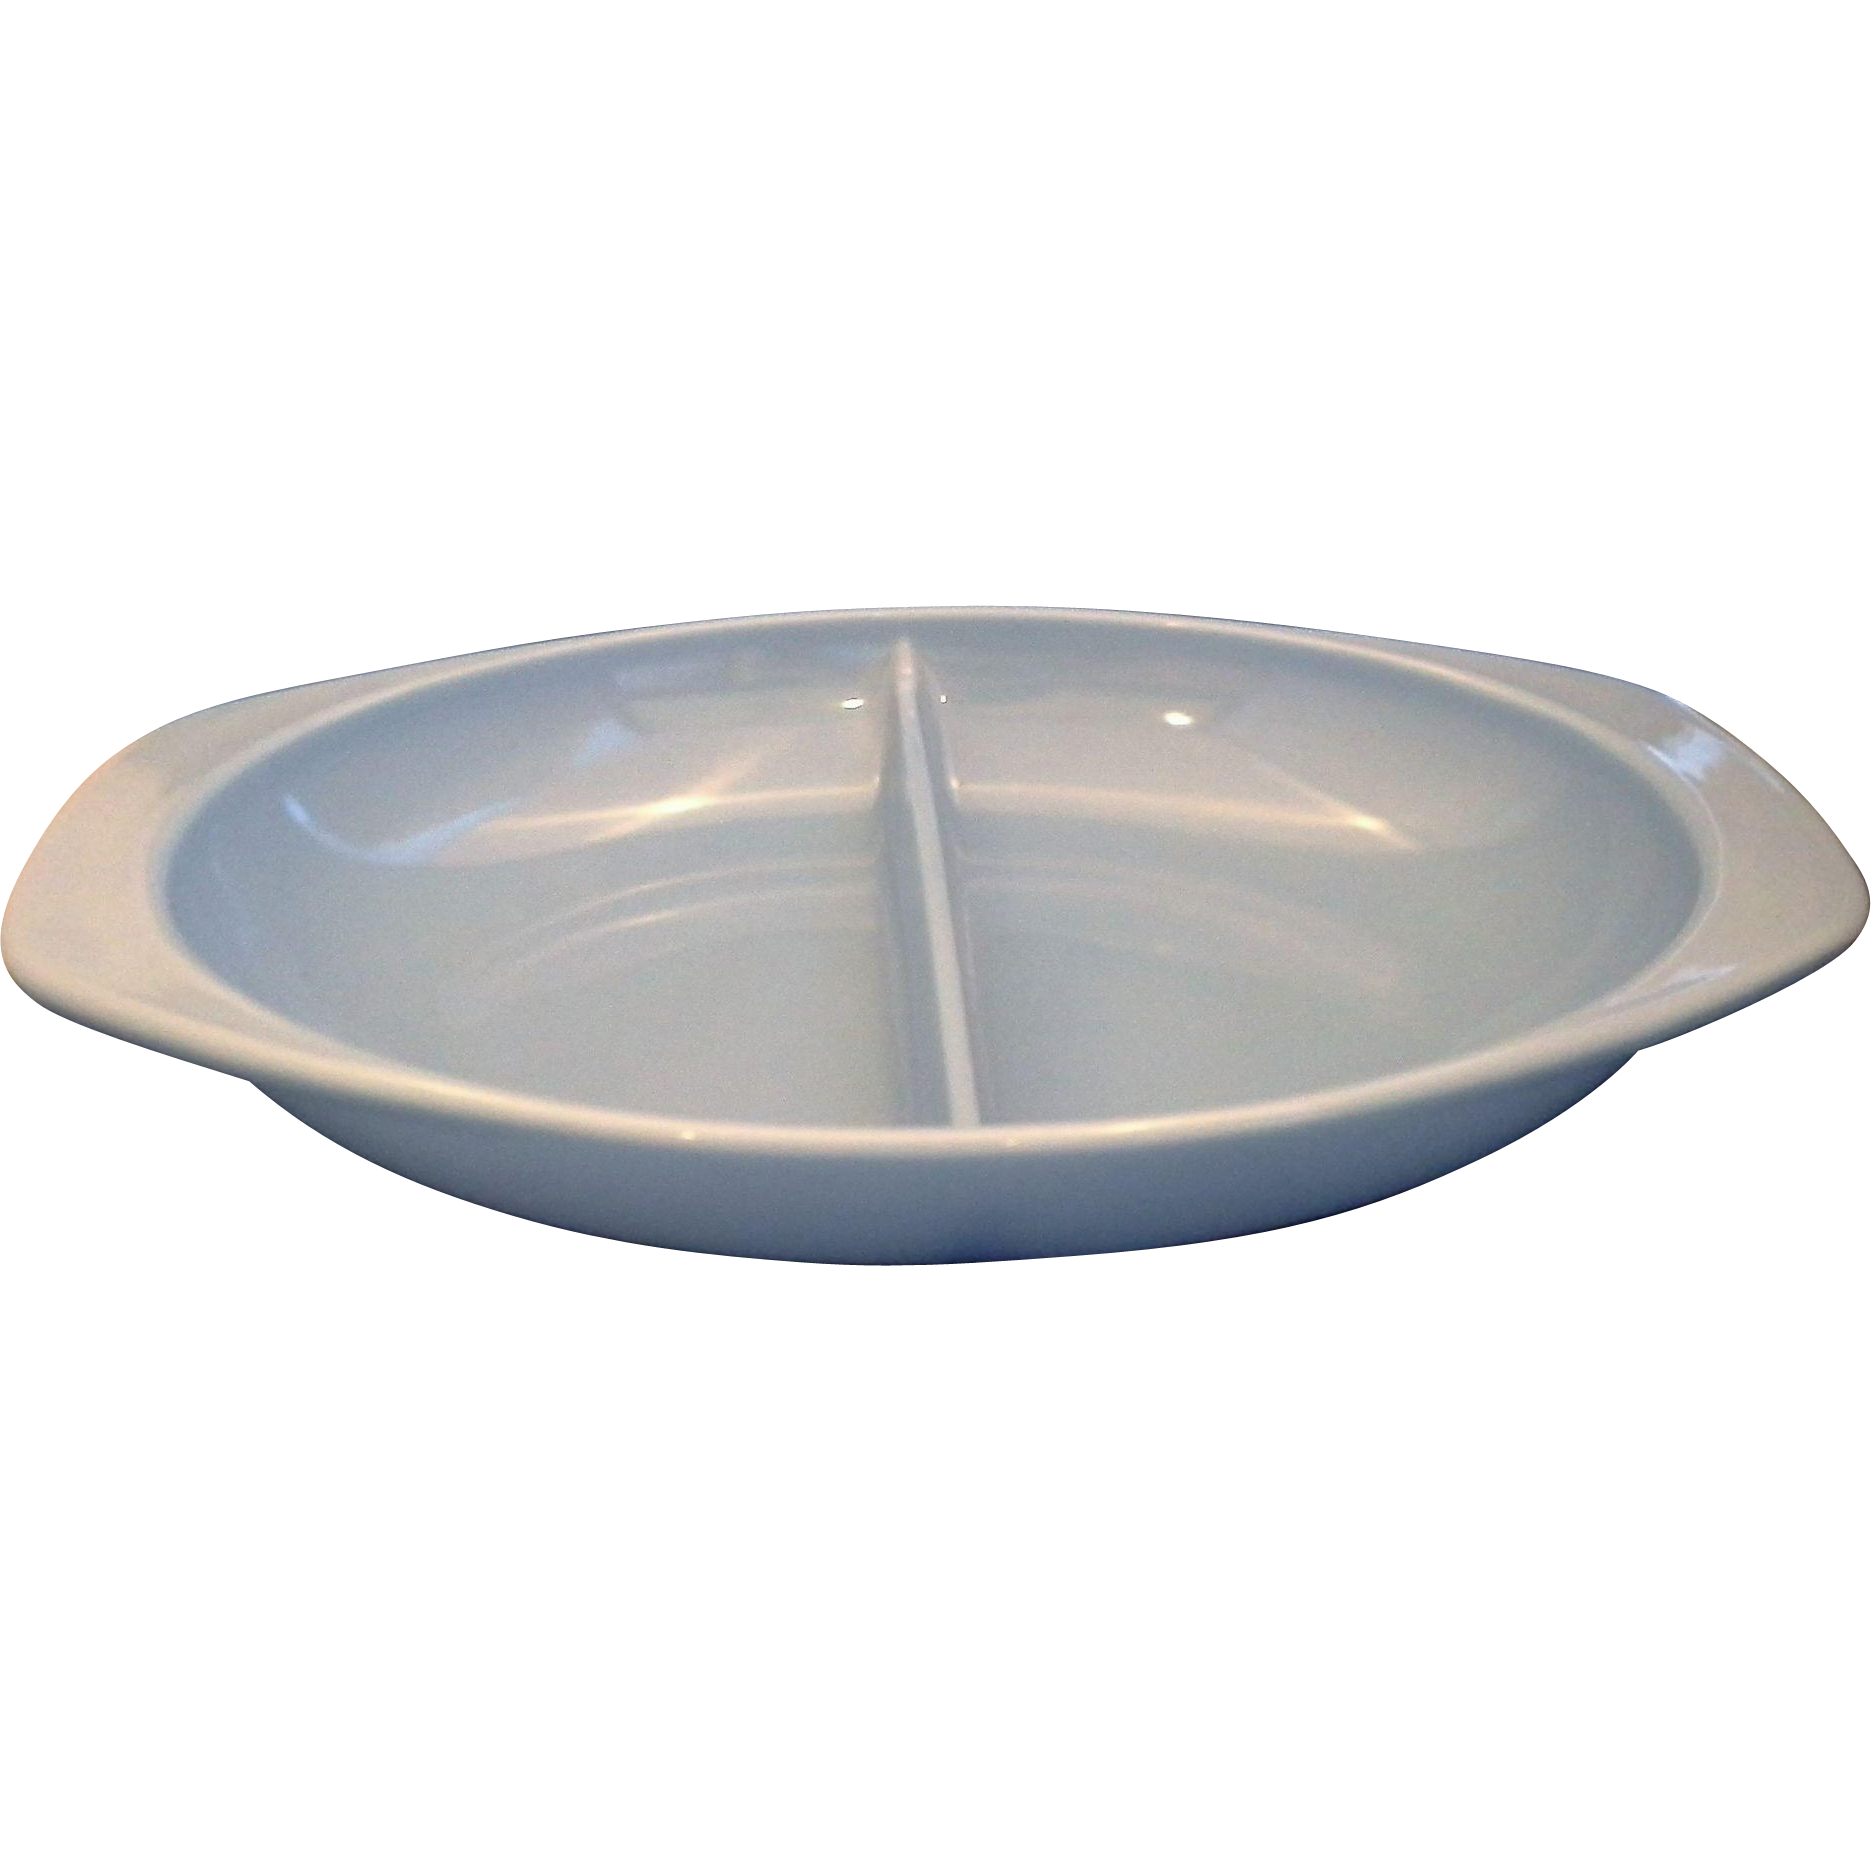 Pyrex Delphite Blue Divided Oval Vegetable Dish